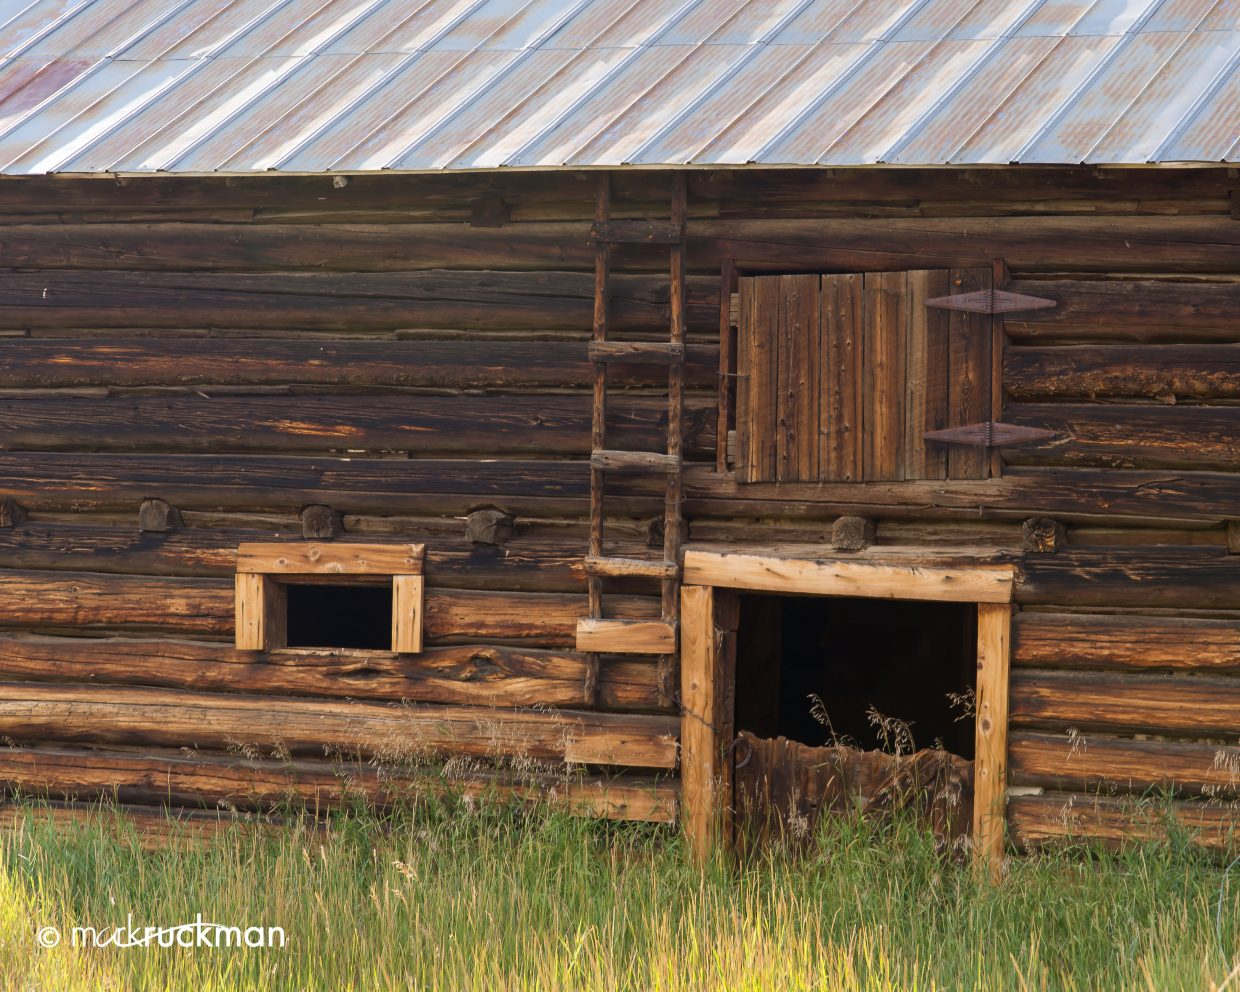 The Old Barn that so many drive by every day. Submitted by: Mark Ruckman